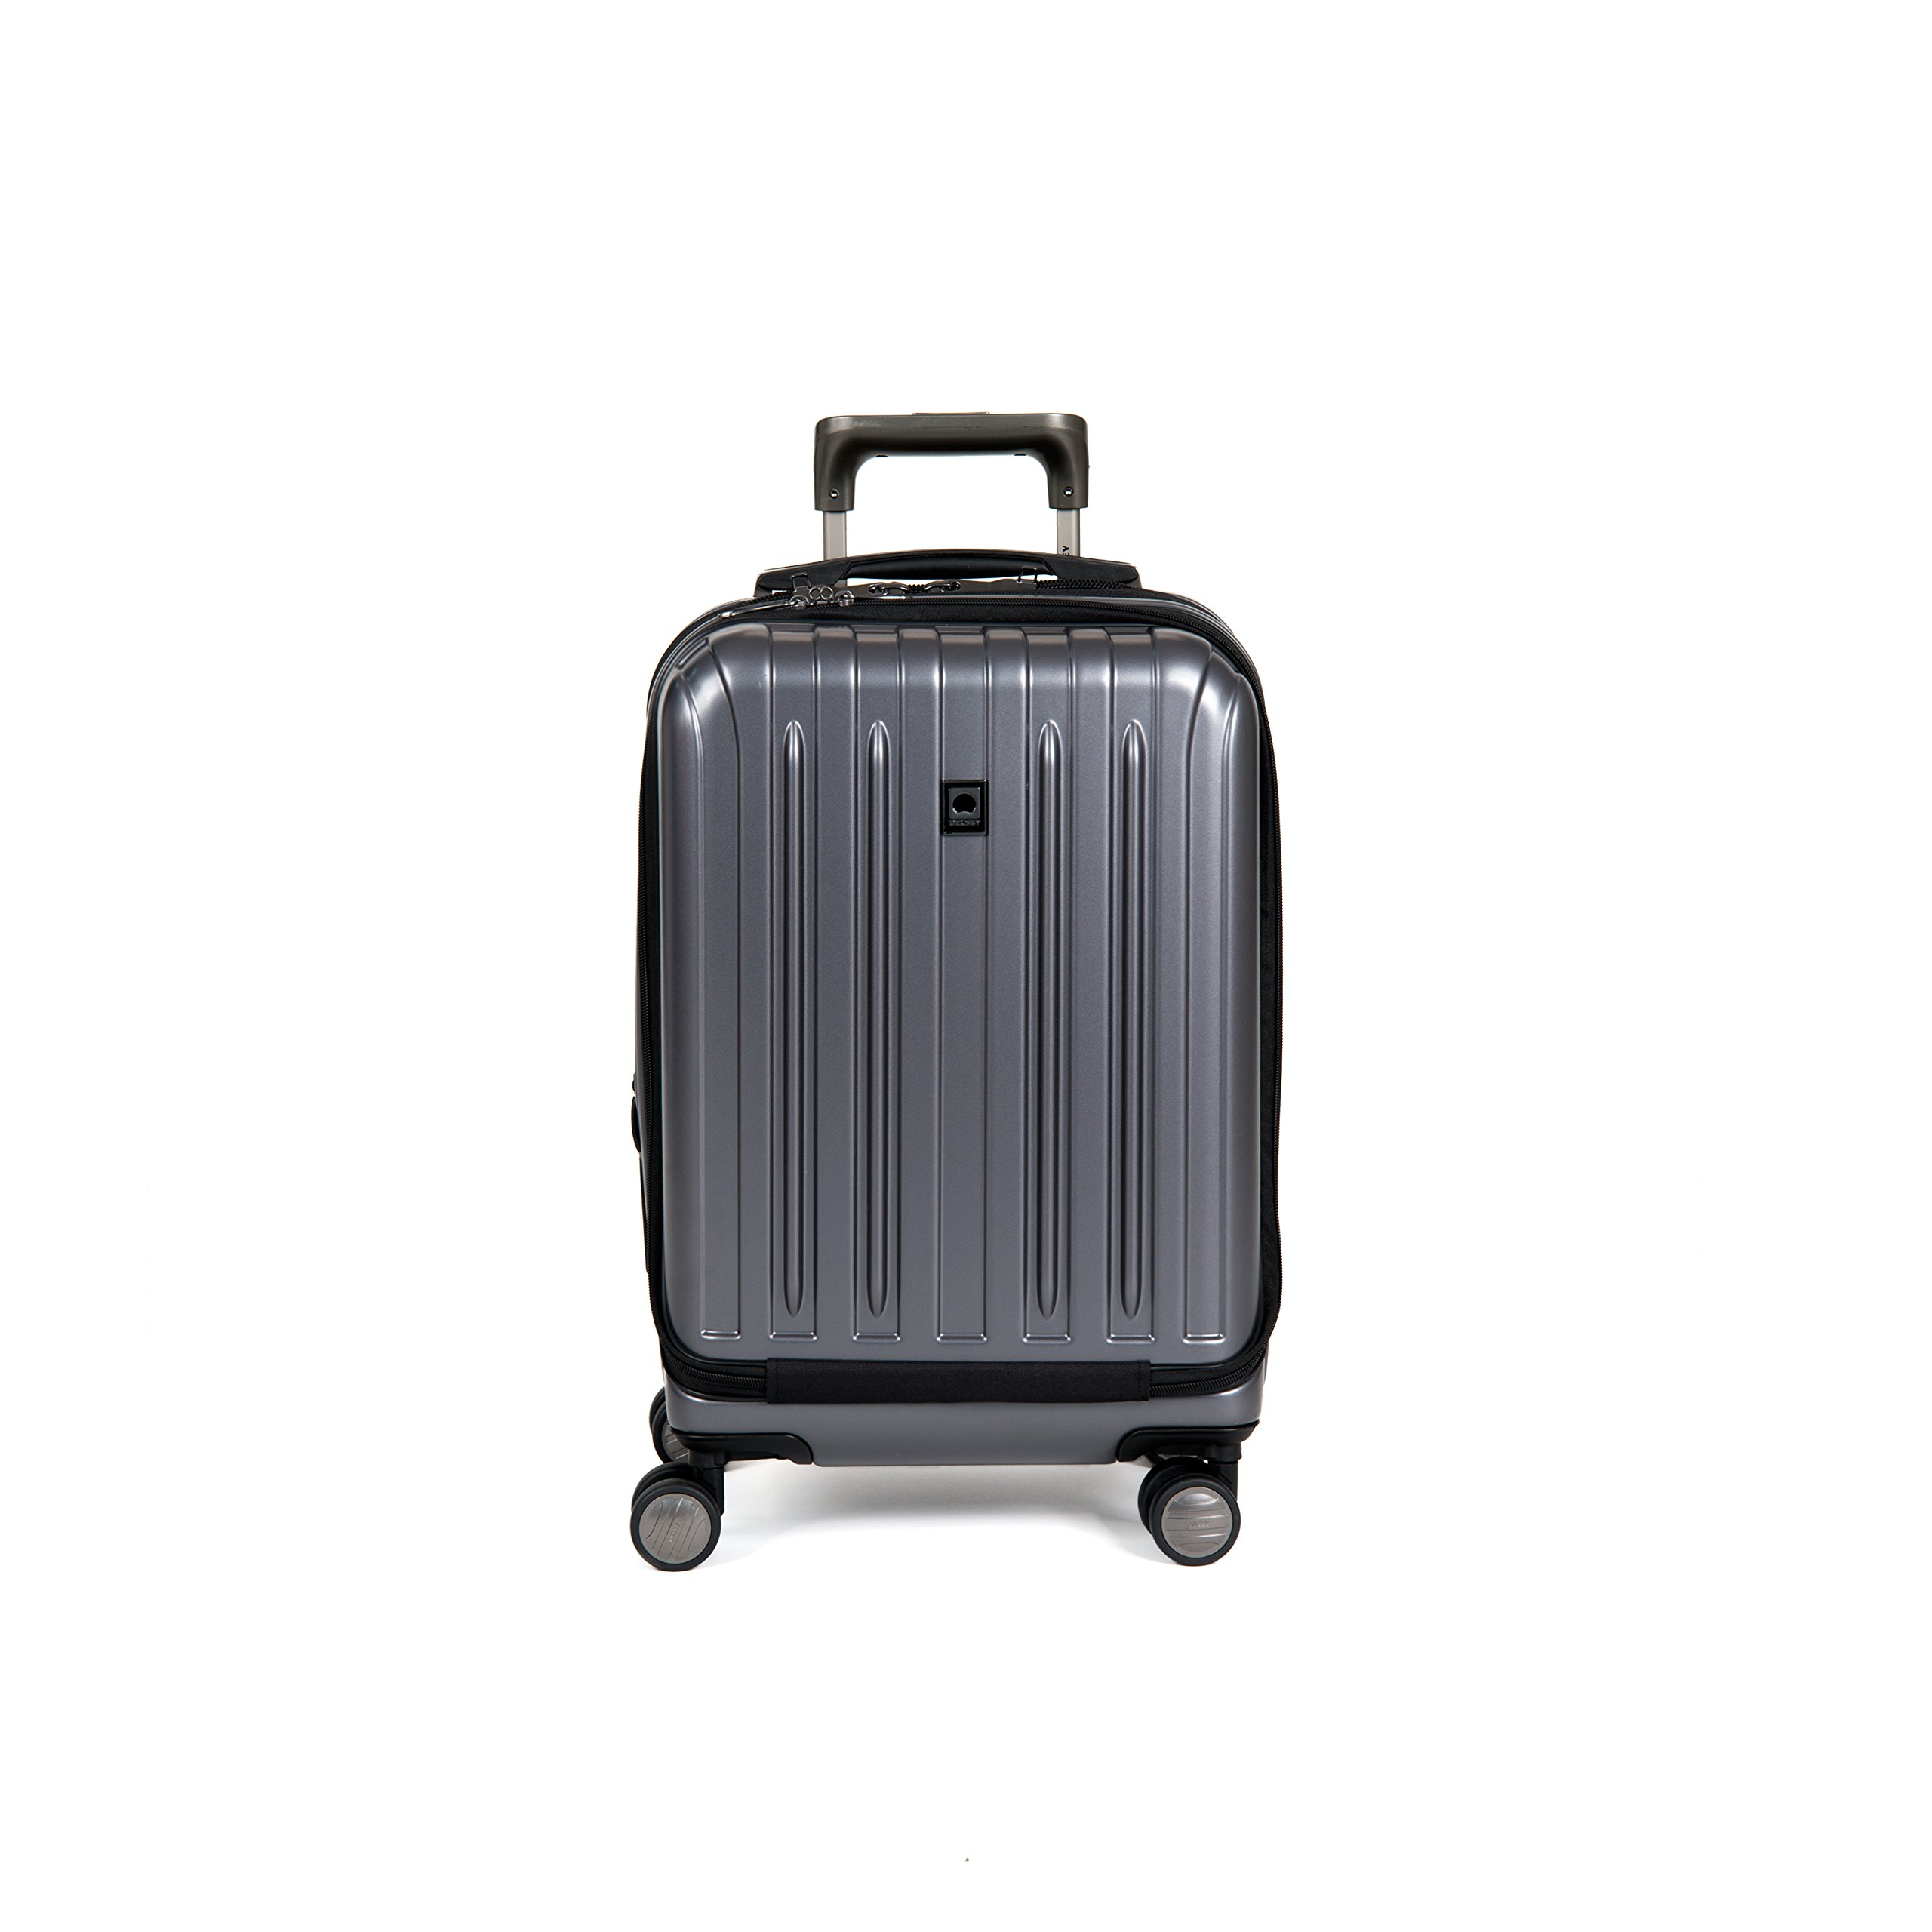 Delsey Luggage Helium Titanium International Carry-On EXP Spinner Trolley Metallic, Graphite, One Size by DELSEY Paris (Image #1)